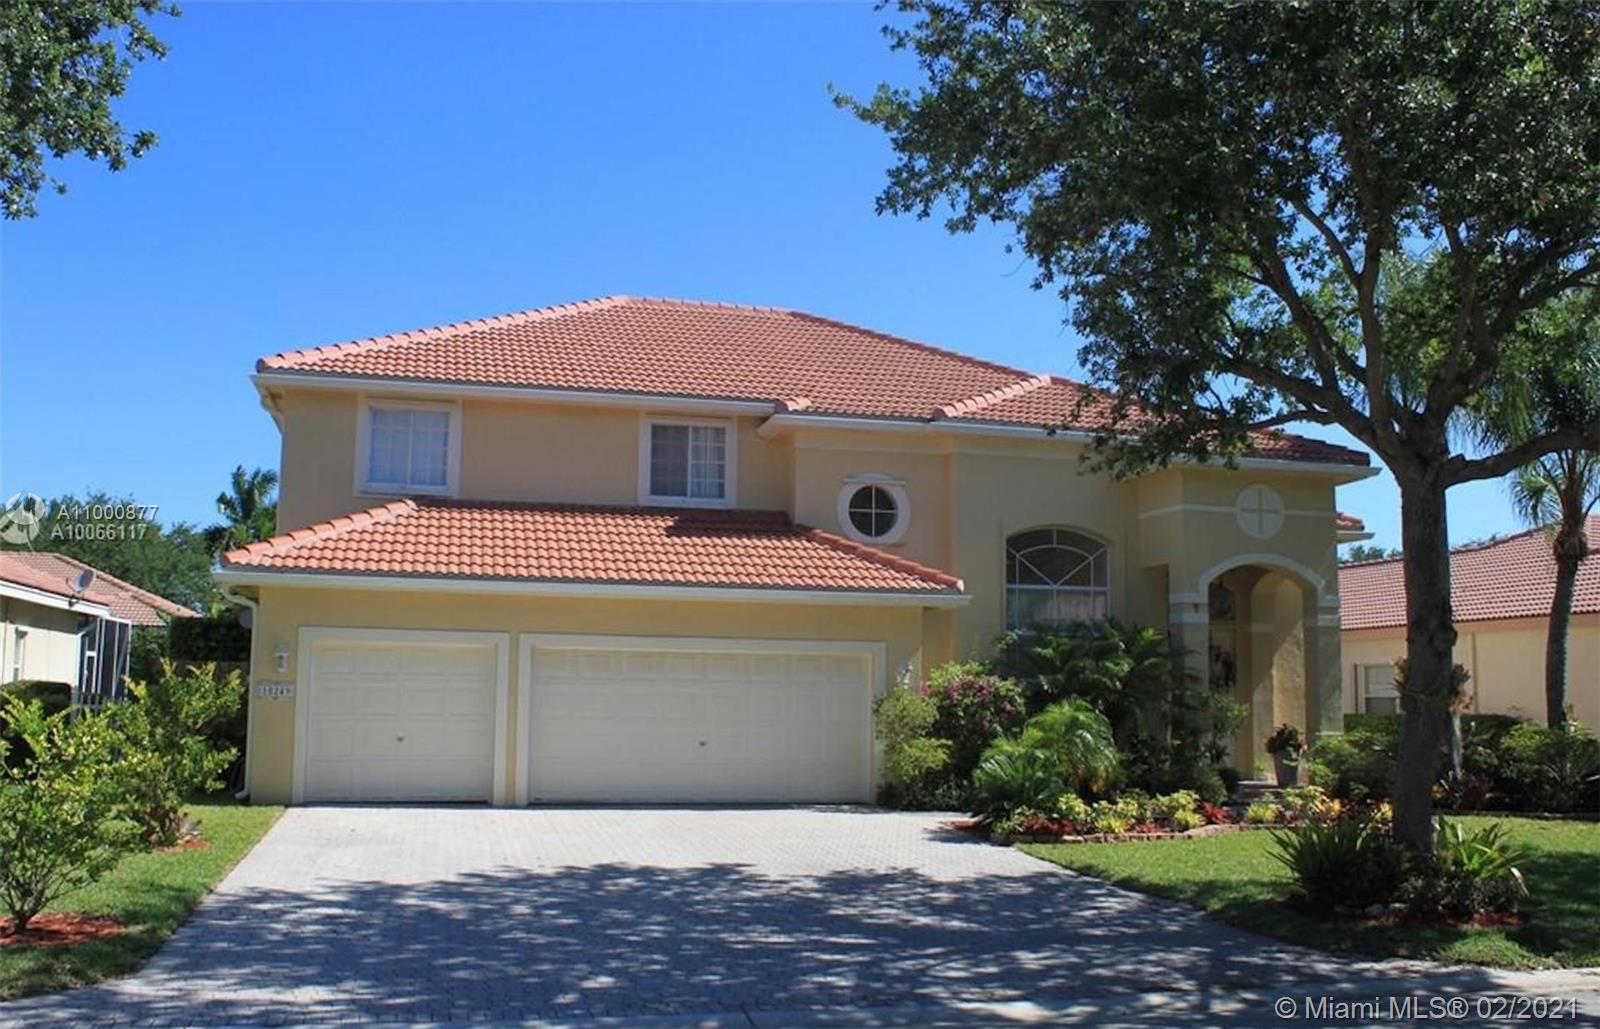 Ready to move in. Gorgeous and spacious home with 5 bedrooms, 3 bathrooms, 3 car garage in great and desirable community in Coral Springs with inexpensive HOA. Large backyard for entertainment with beautiful pool. Freshly painted throughout. Wood flooring in all bedrooms and stairs. Stainless steel appliances. Hurricane according shutters. Excellent school district, close to shopping centers and to highways.